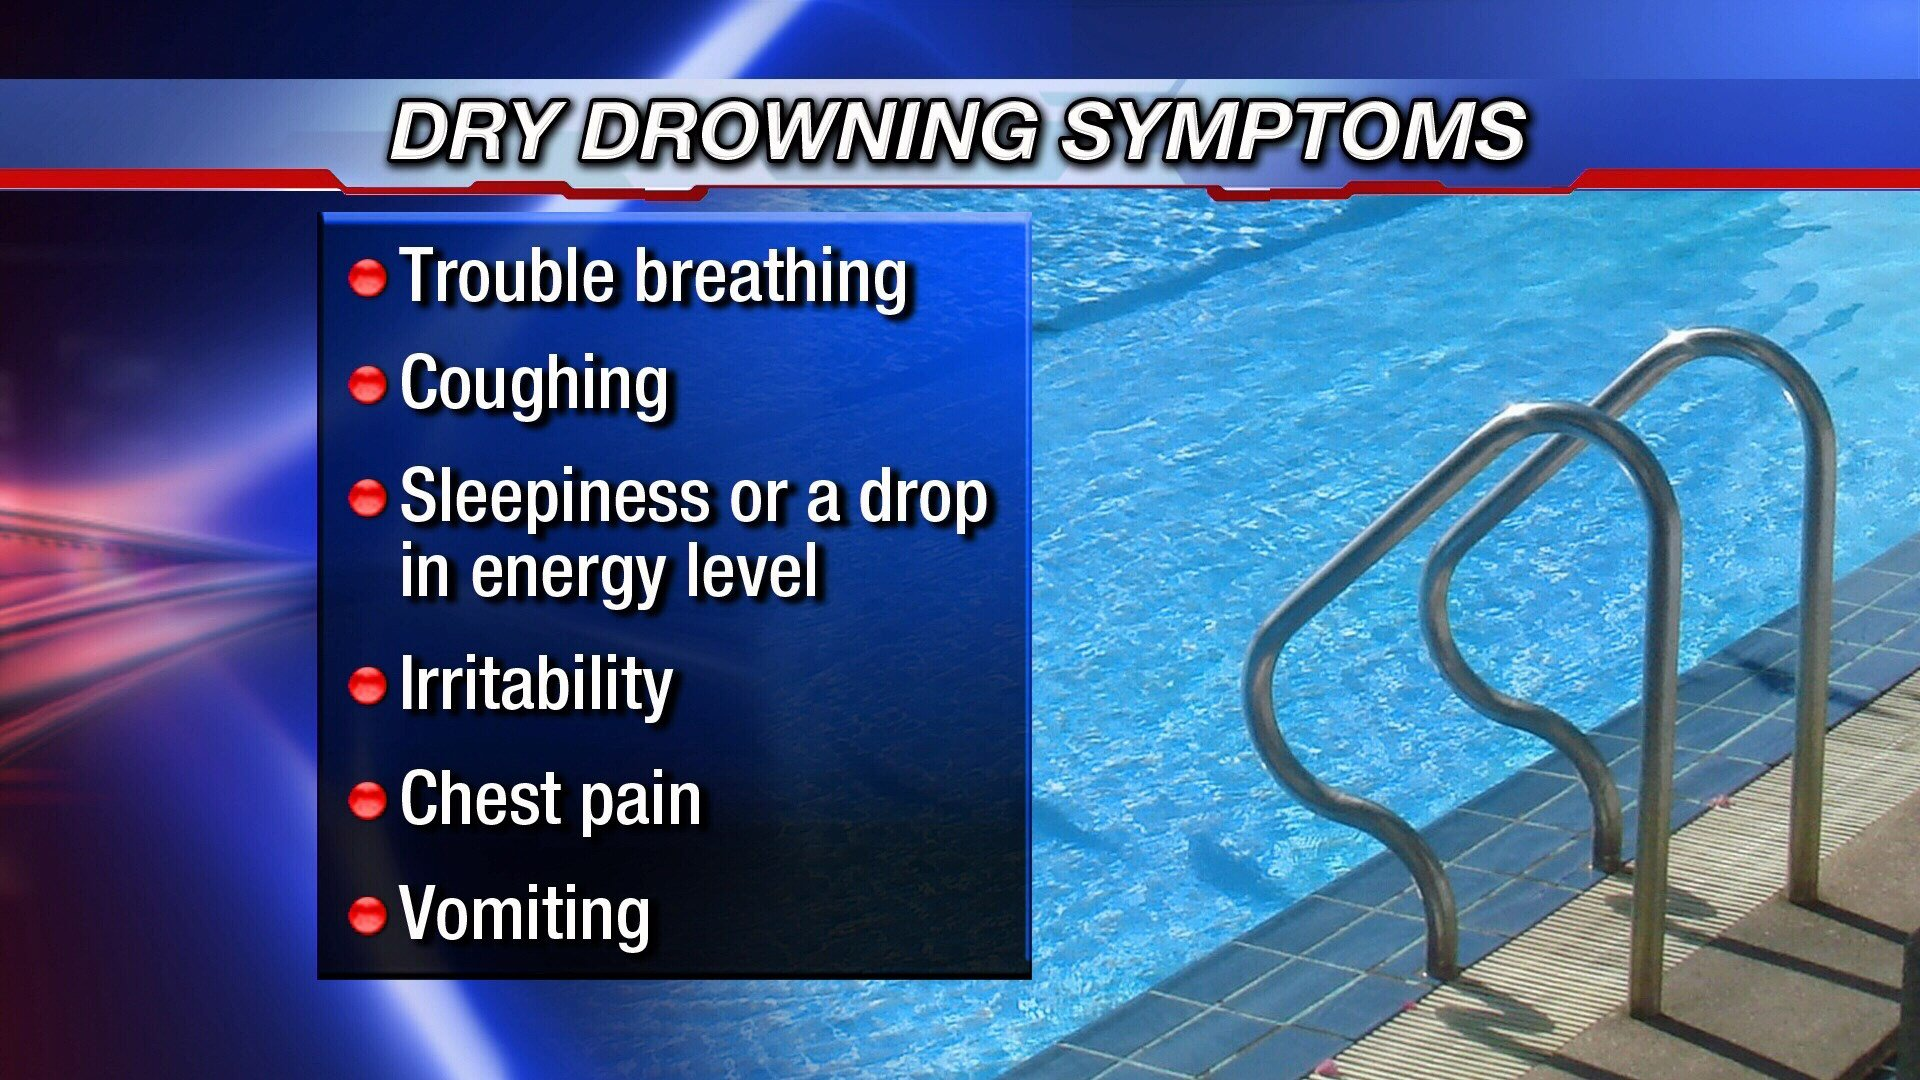 Dry drowning may have claimed child's life